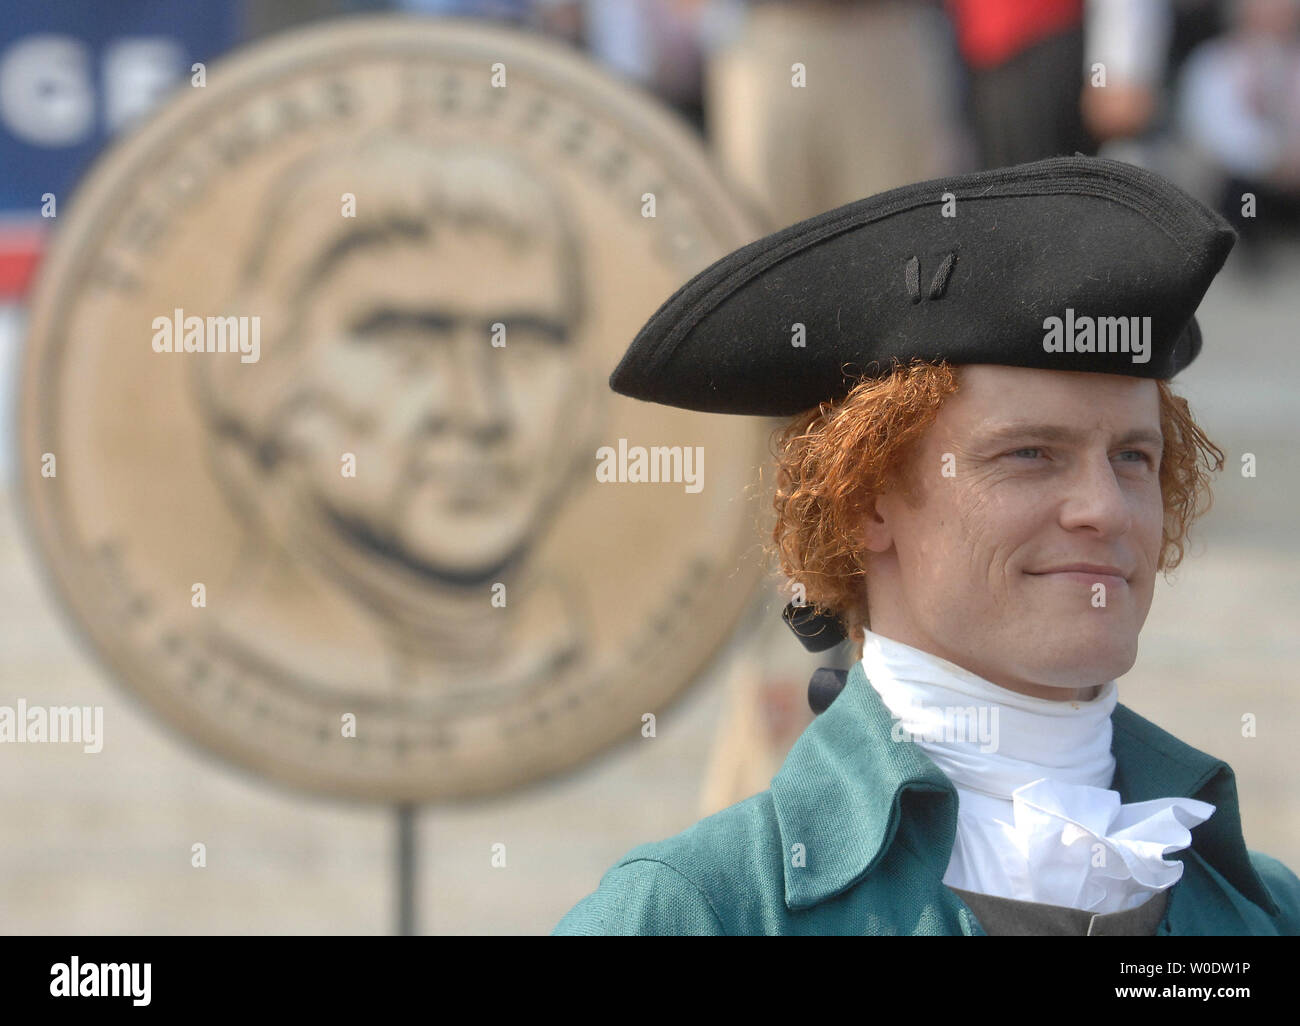 A Thomas Jefferson impersonator stands next to a model of